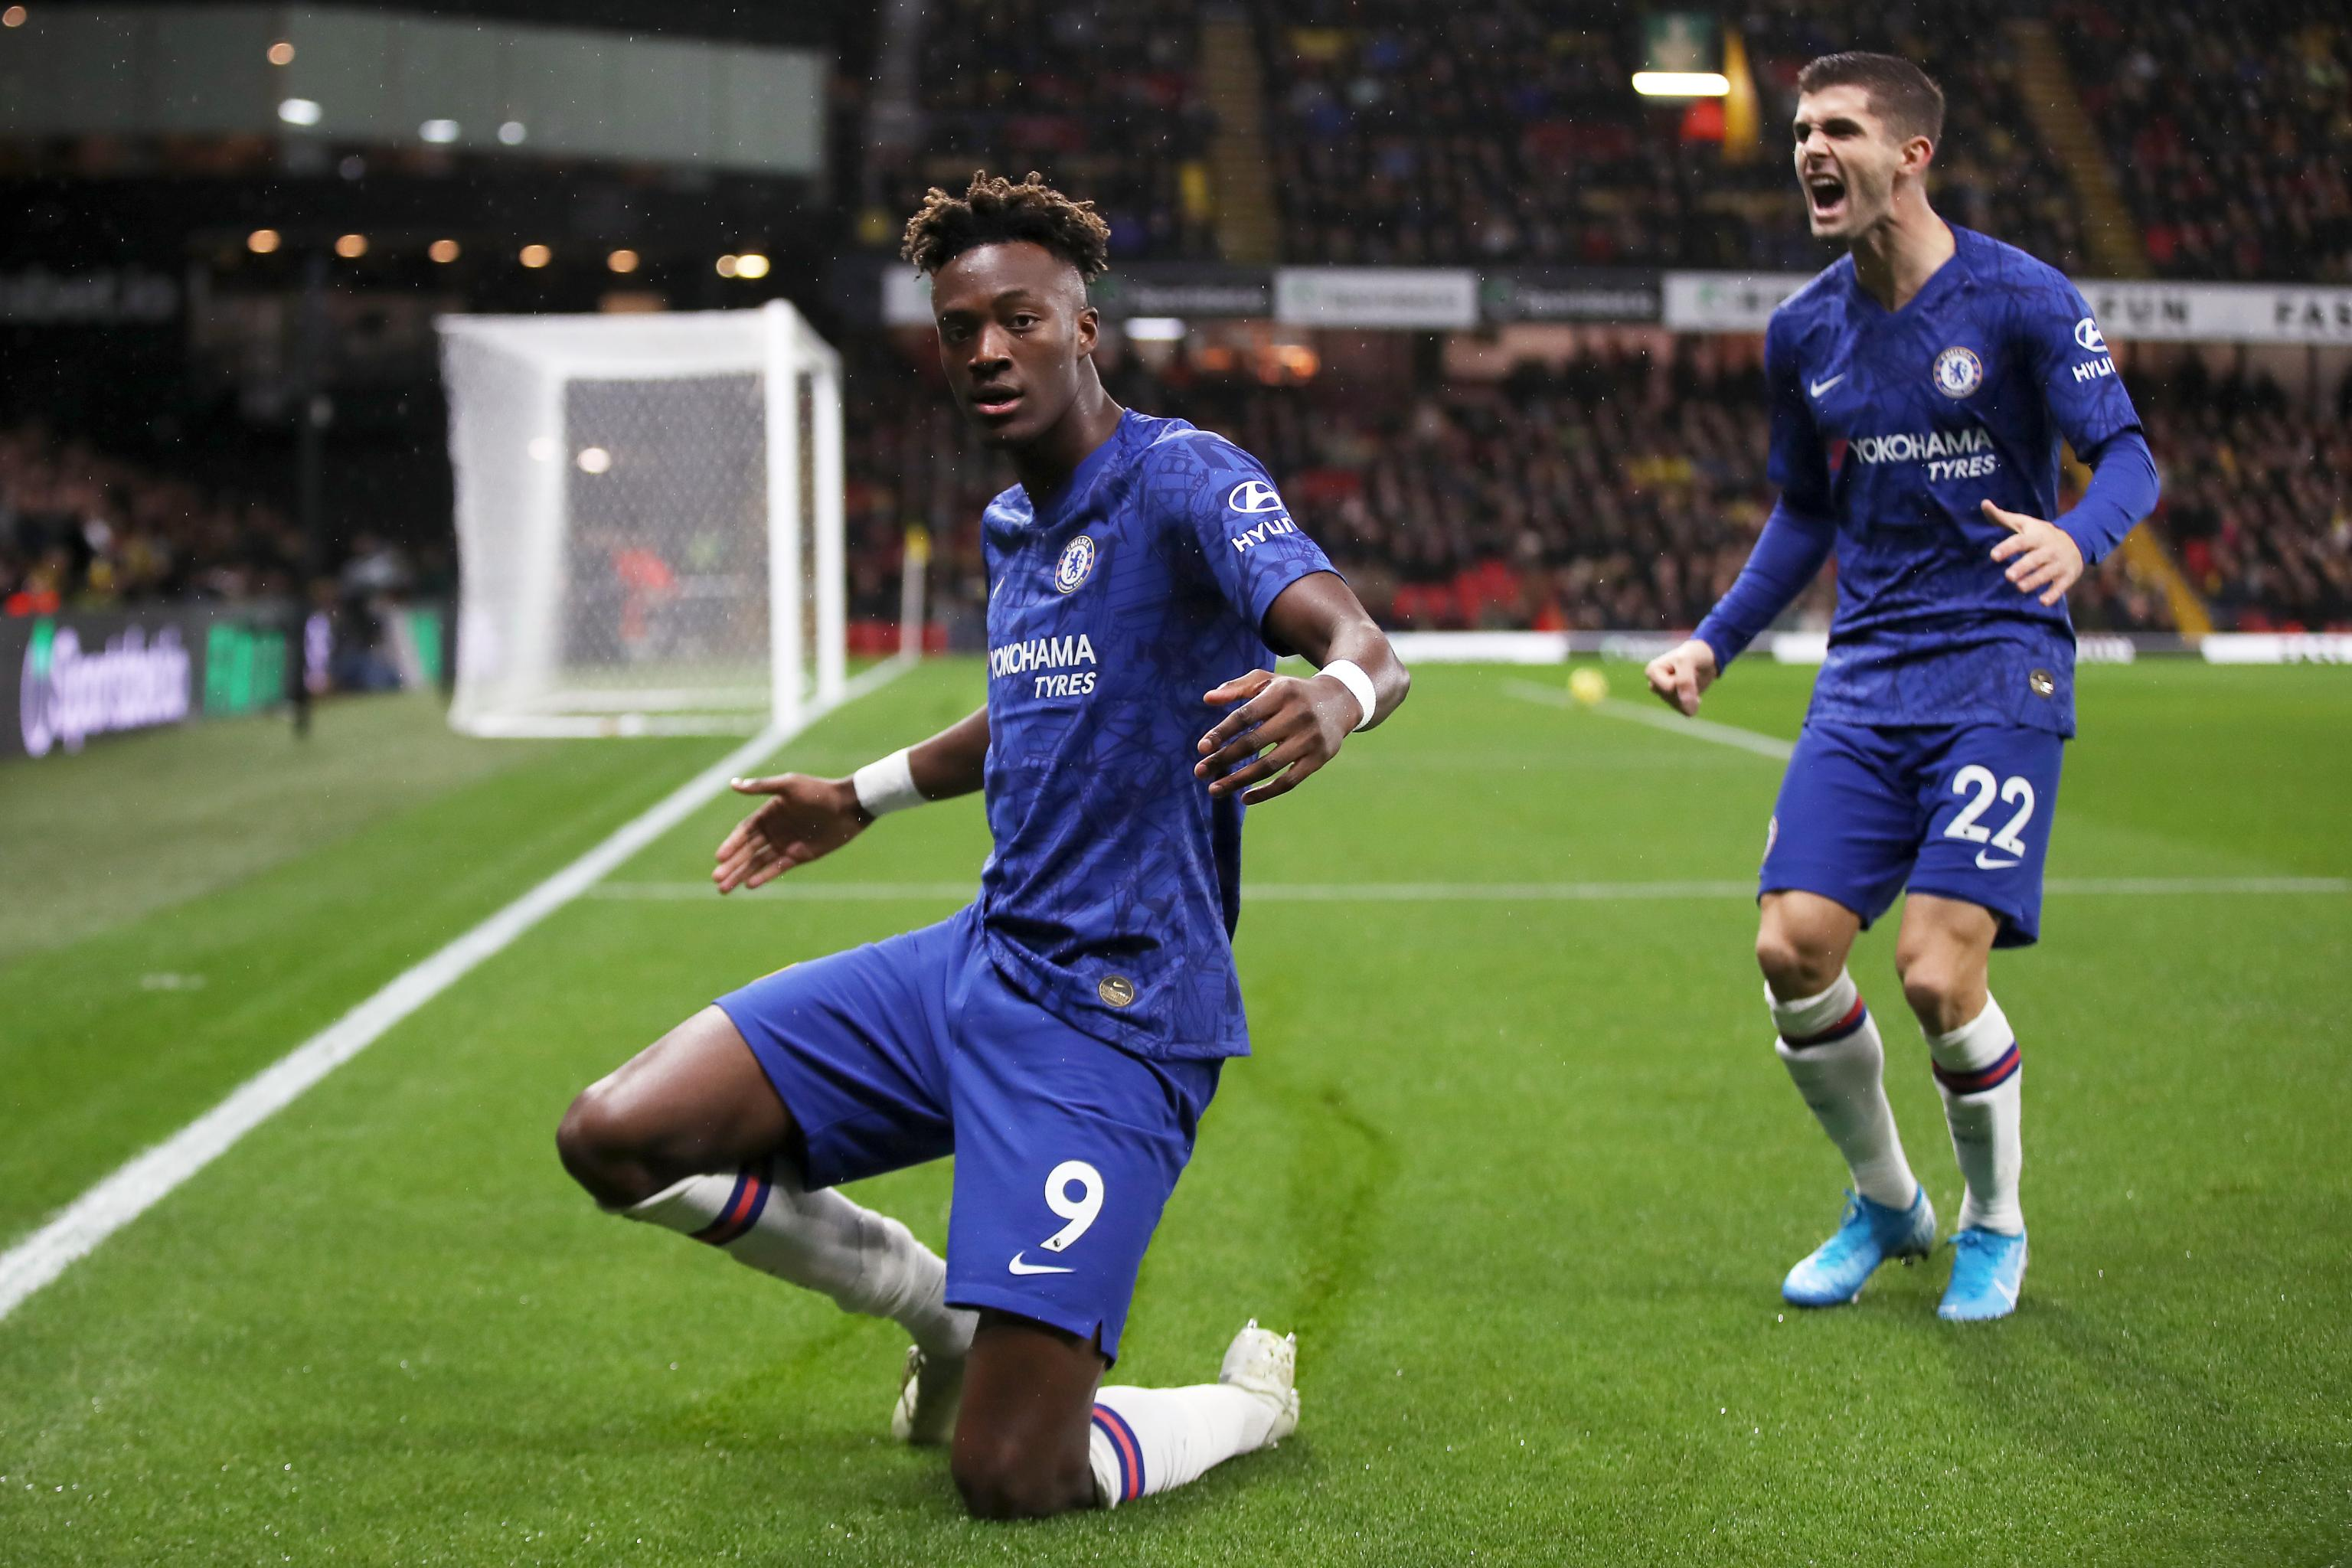 Chelsea Vs Crystal Palace Odds Live Stream Tv Schedule And Preview Bleacher Report Latest News Videos And Highlights